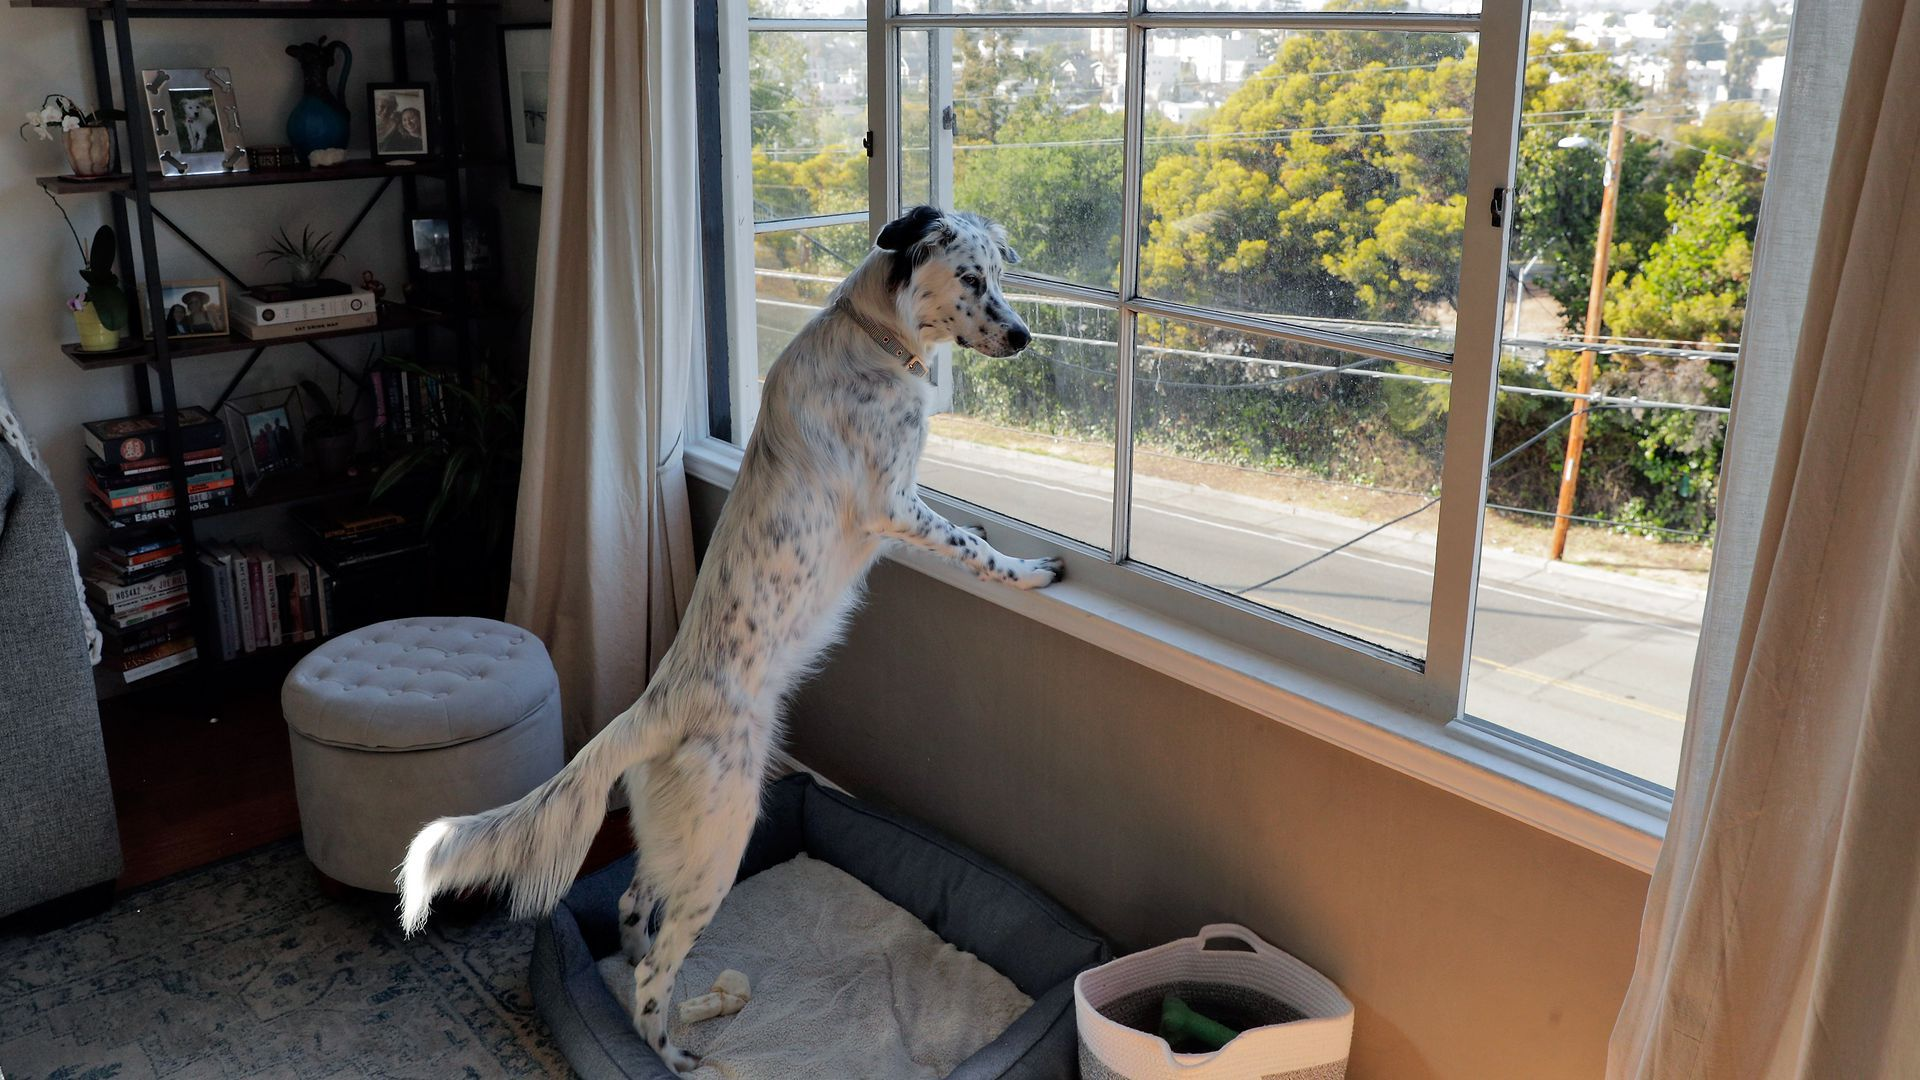 A dog stands on its hind legs looking out the window